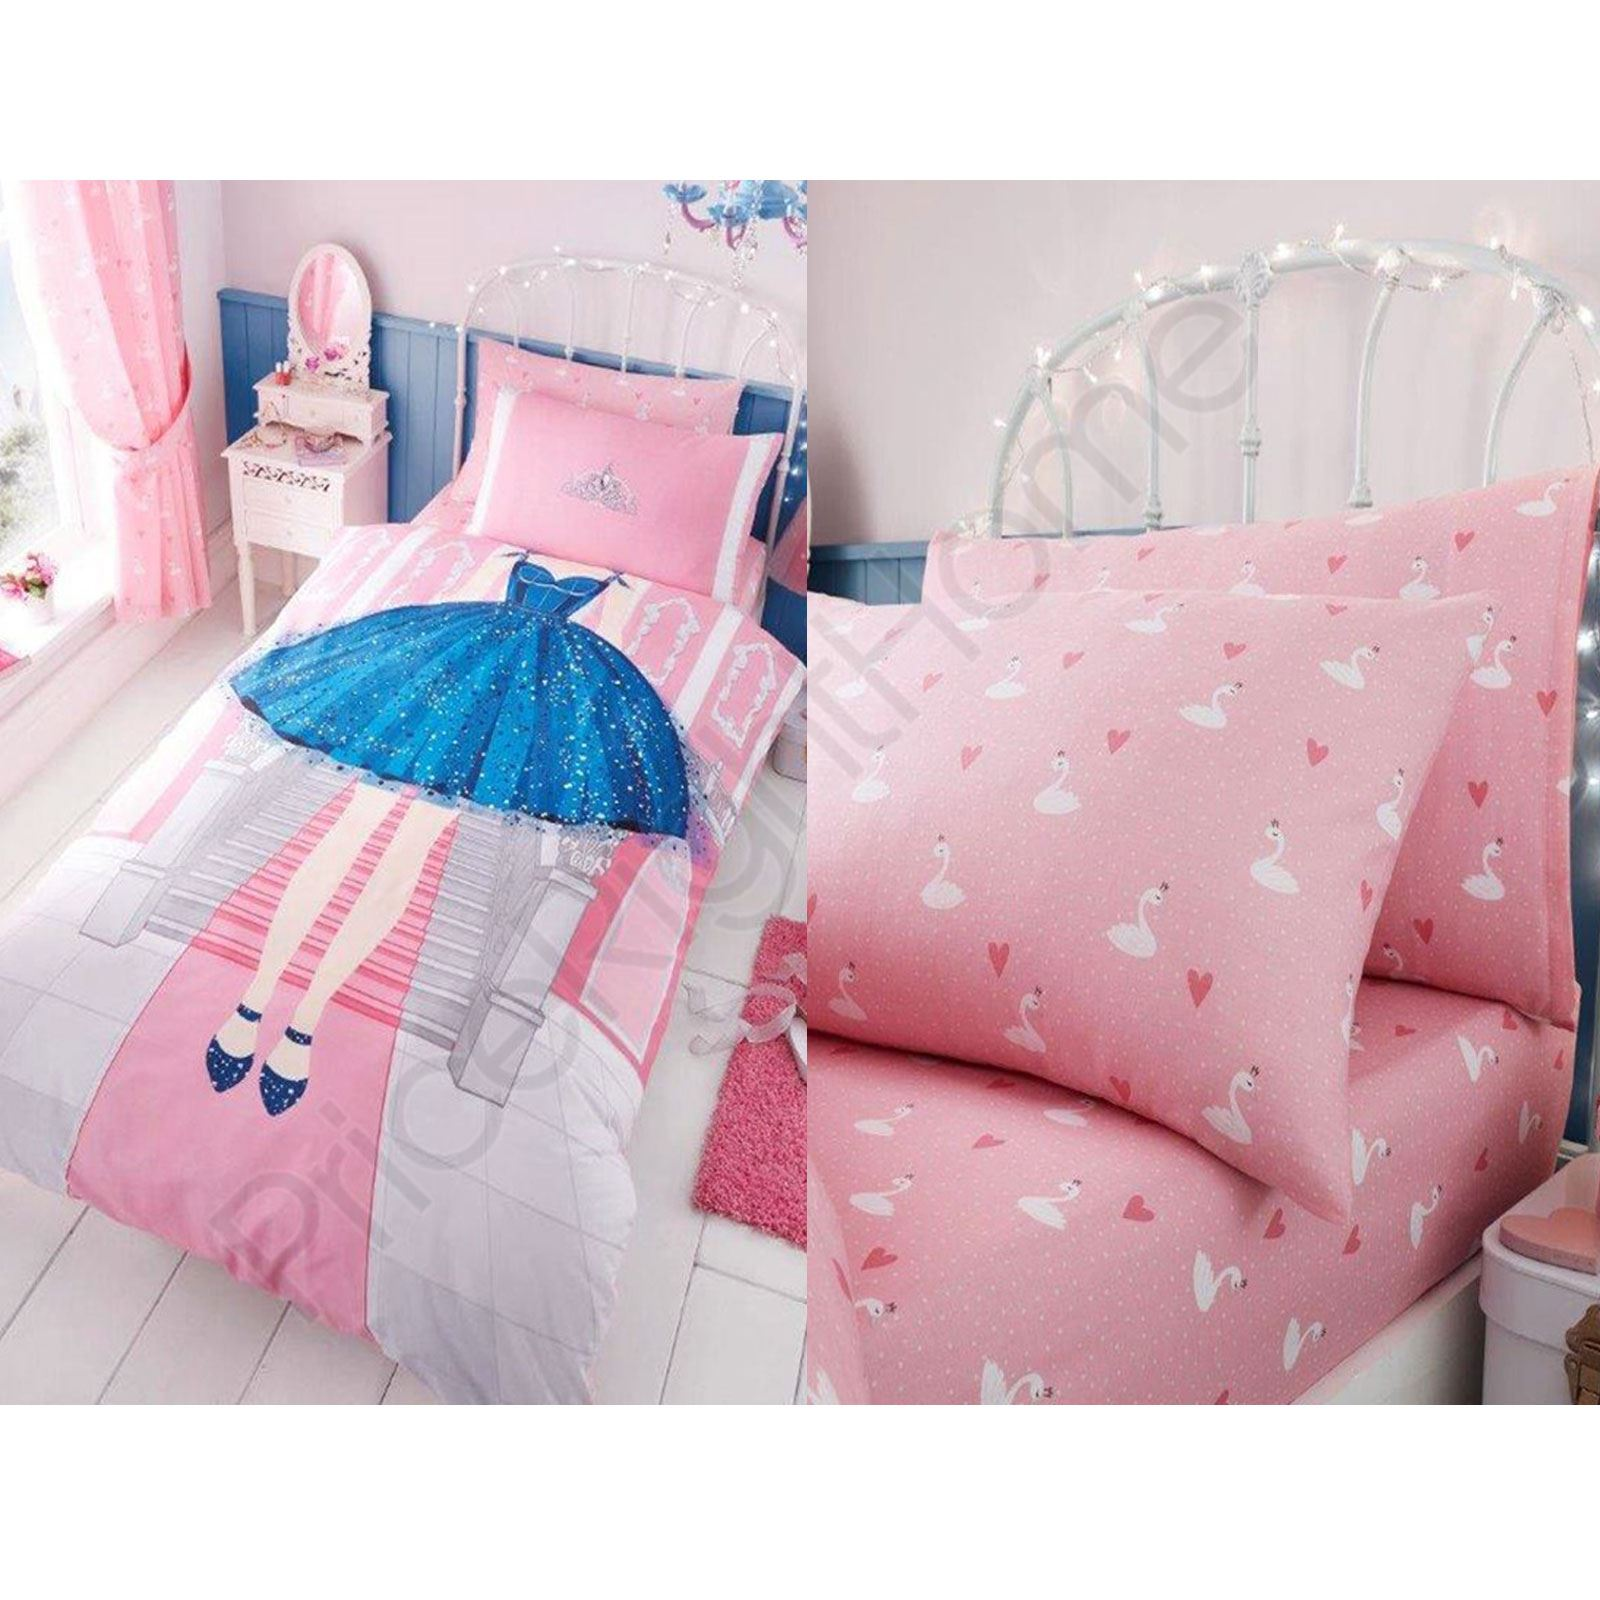 kinder jungen m dchen einzel bettw sche passendes leintuch 2 kissenbezug ebay. Black Bedroom Furniture Sets. Home Design Ideas